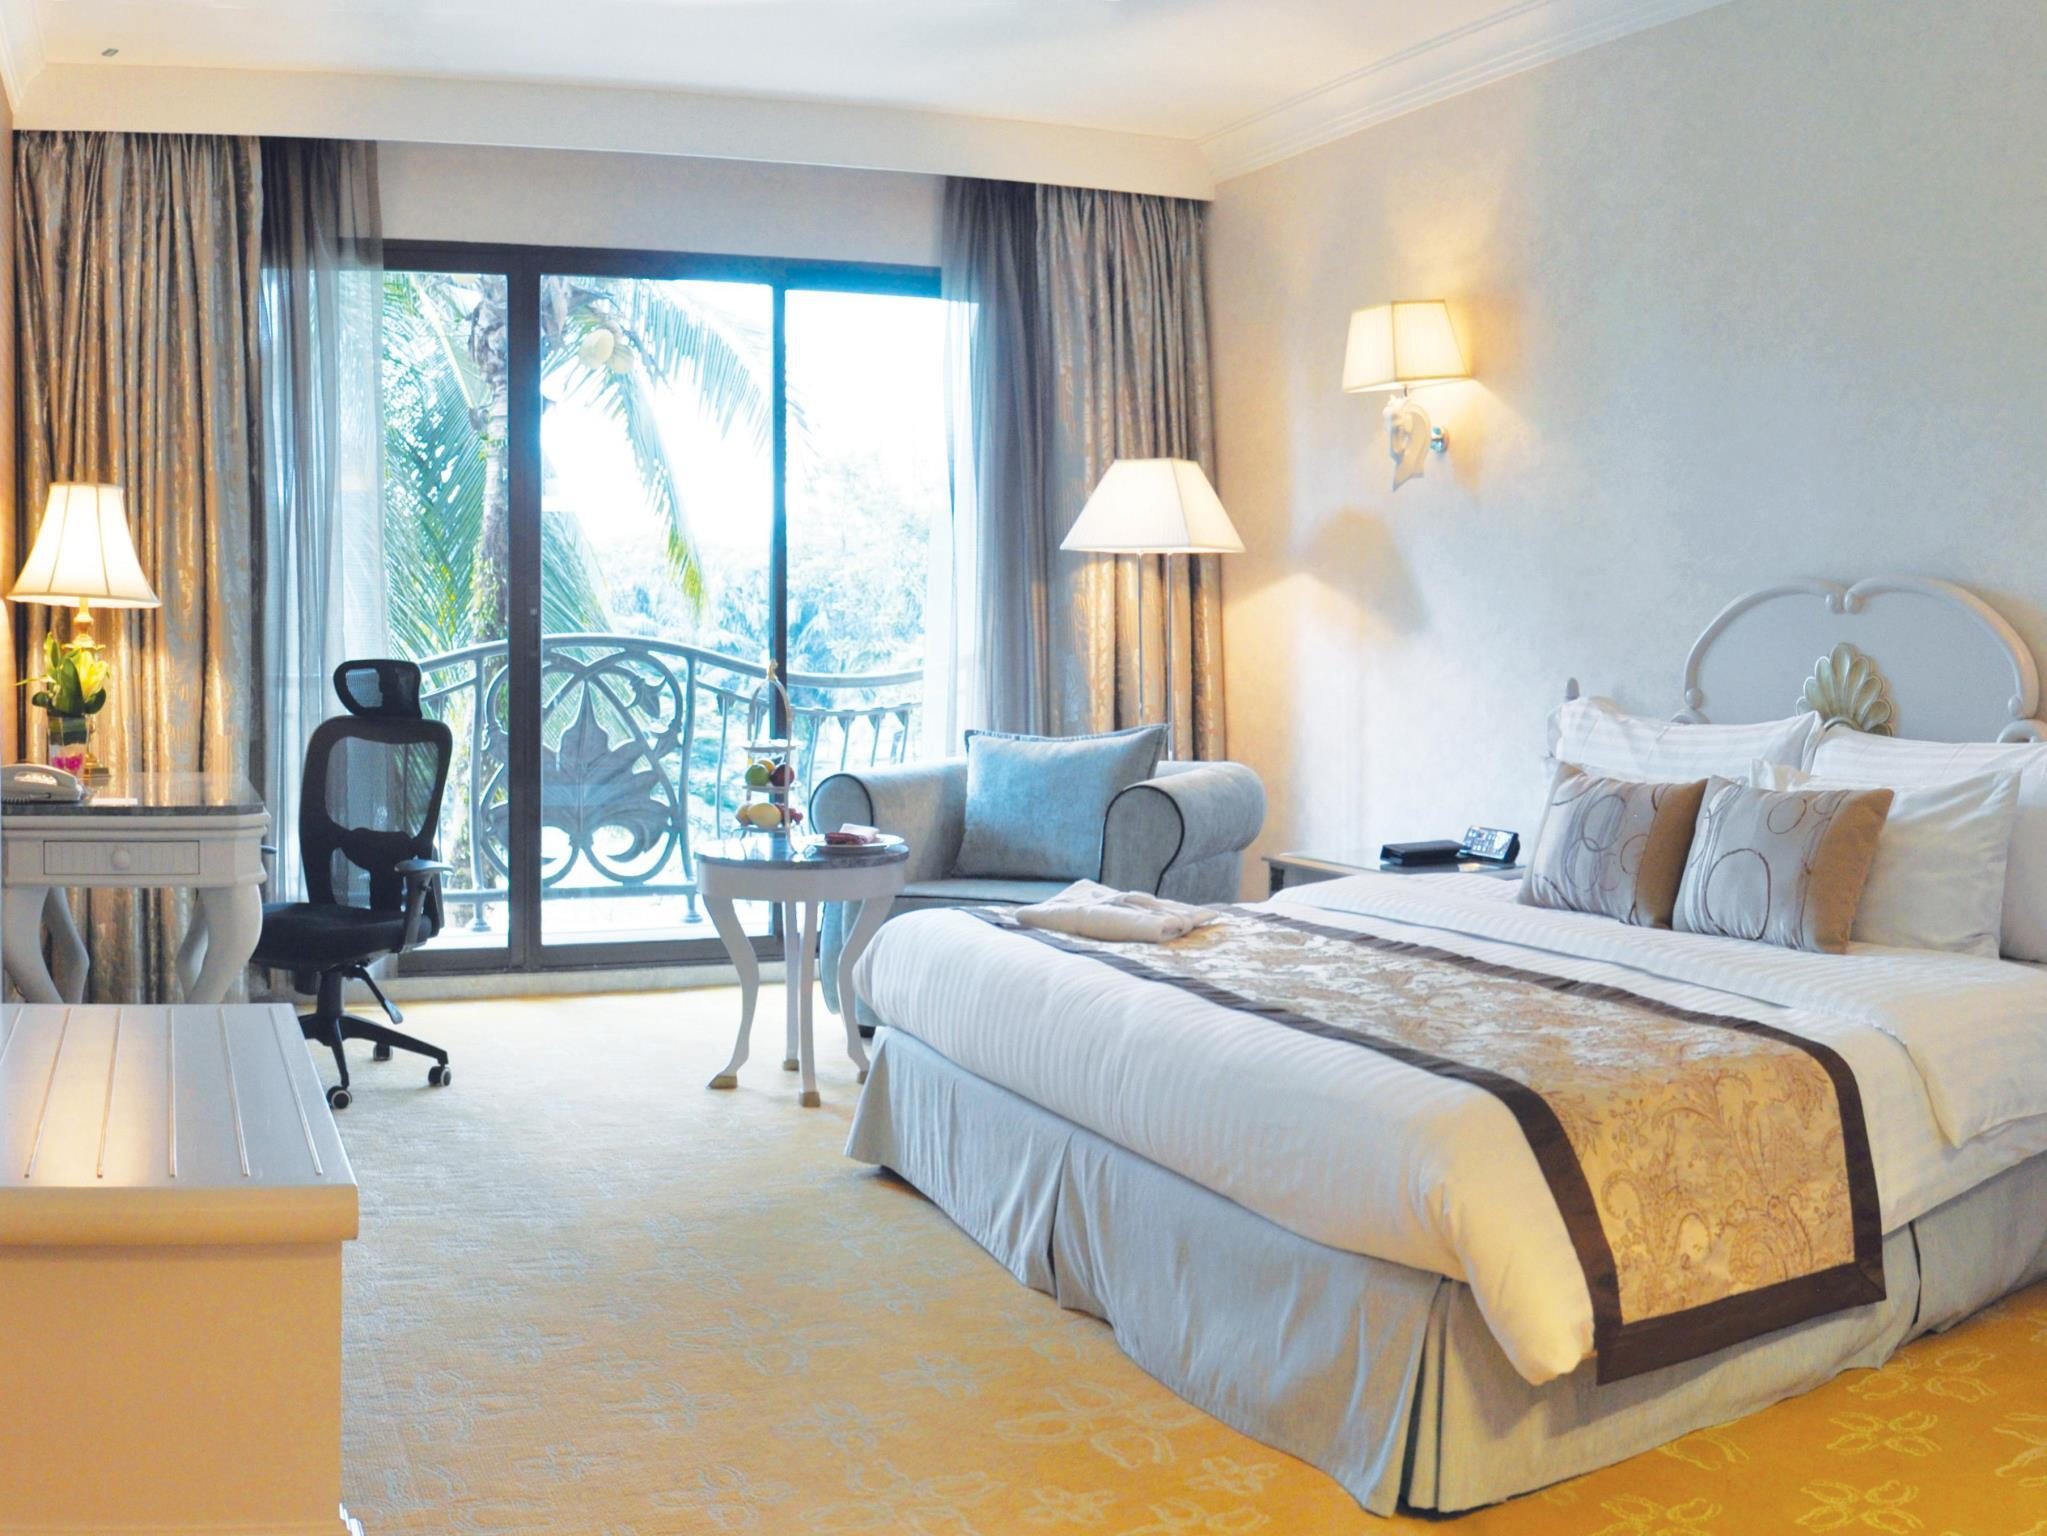 Club Deluxe Room with King Bed - Club Lounge Access for Adults Only